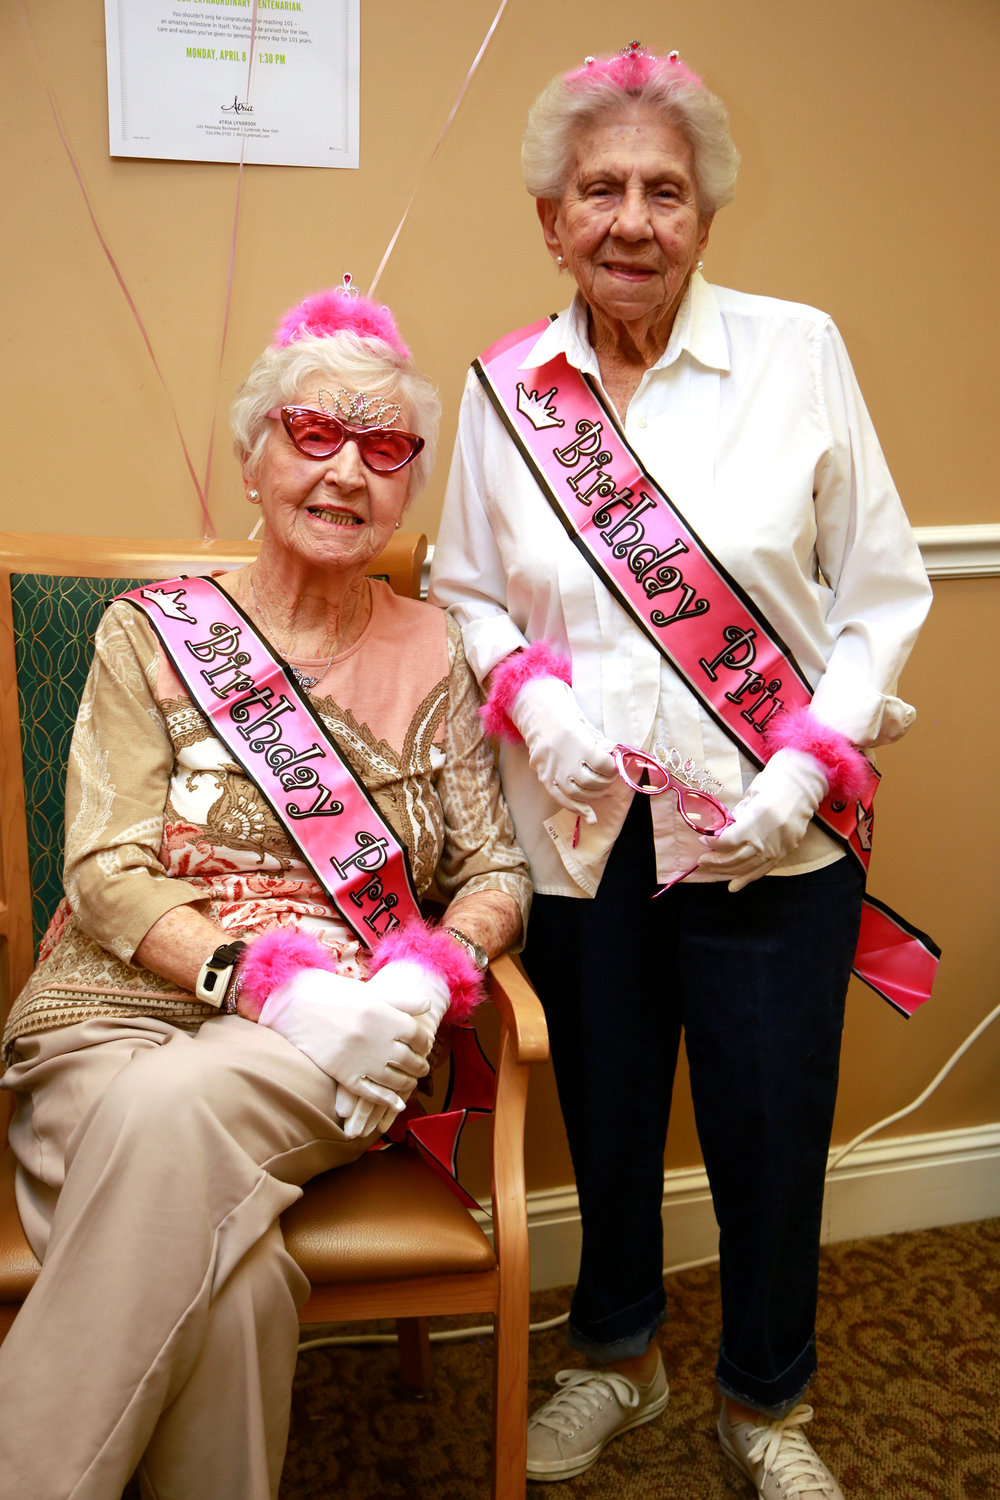 Winifred Boehmke, 101, left, and Nanette Fishman, 100, celebrated their birthdays with a Centenarian Celebration at the Atria of Lynbrook on April 4.